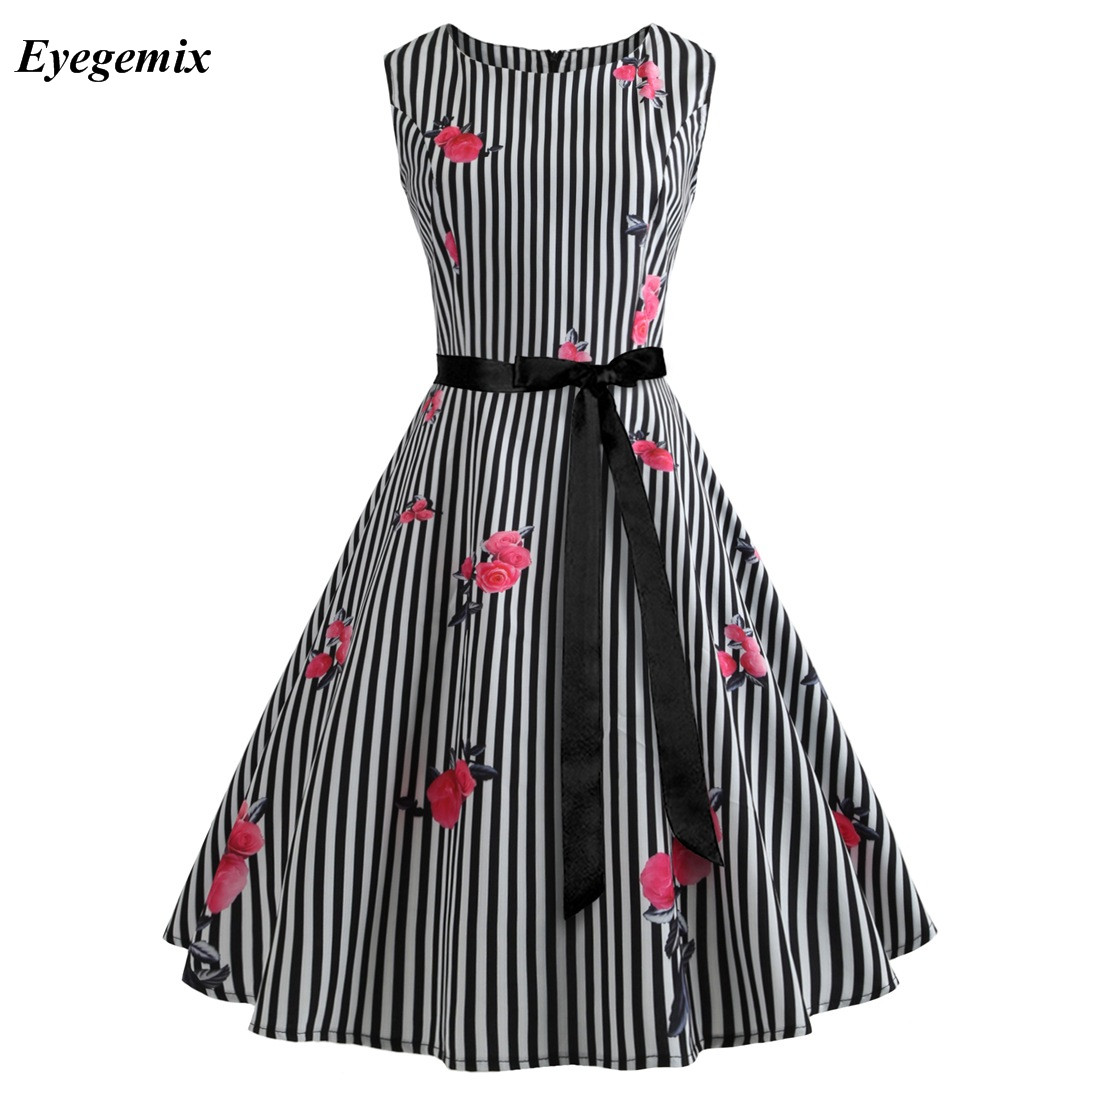 Fashion Party Vestidos Womens Summer Audrey Hepburn Cherry Dress 50s 60s Retro  Vintage Temperament Elegant Casual Dresses 6992ee6a1382